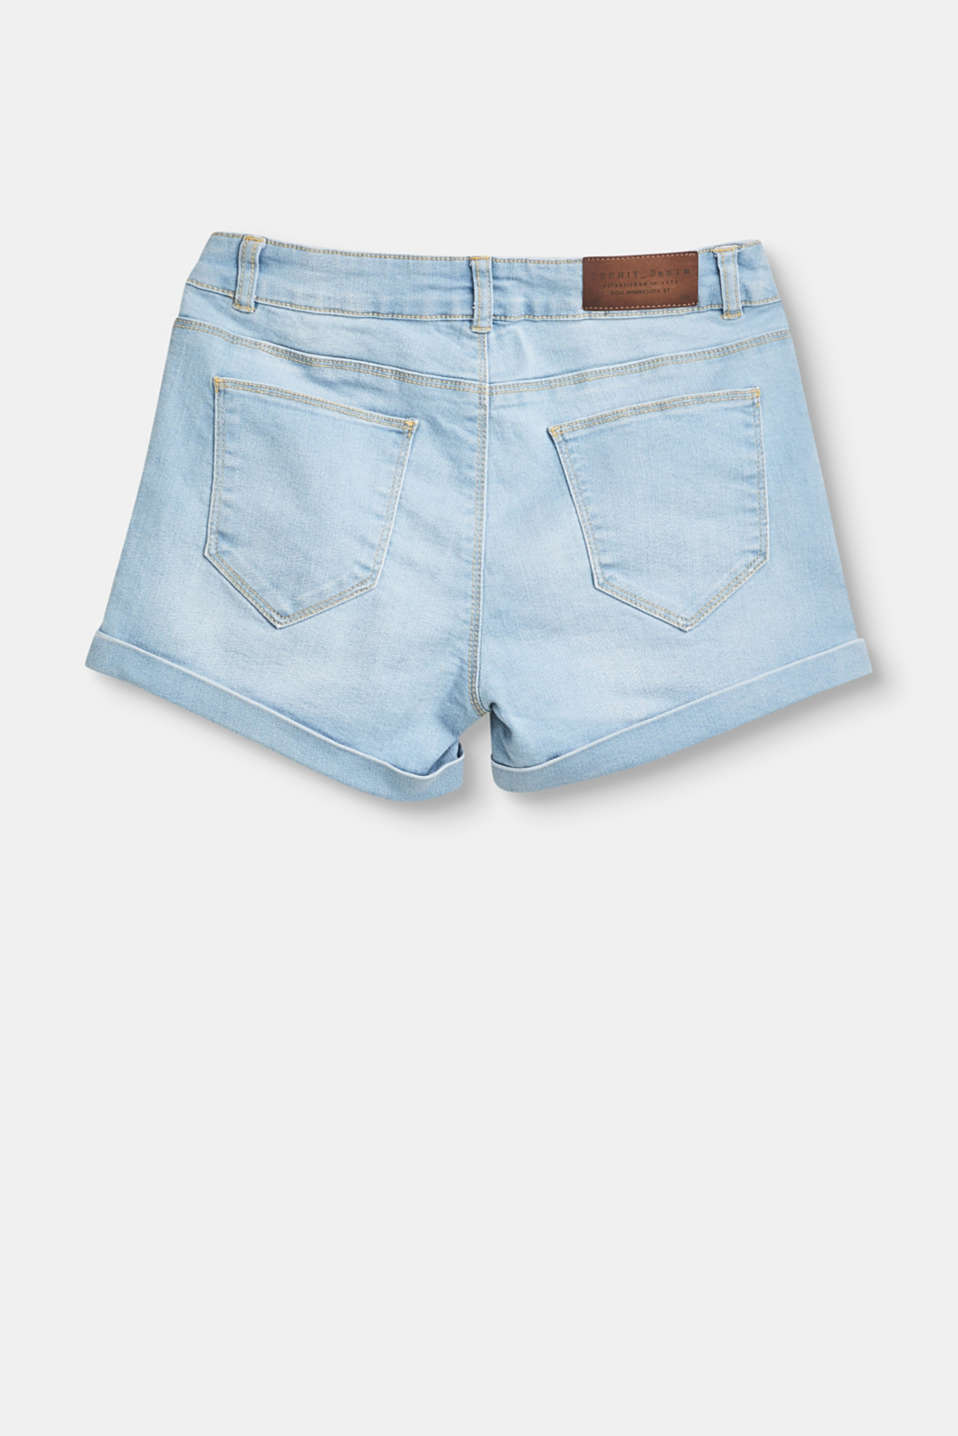 Stretch denim shorts with an adjustable waistband